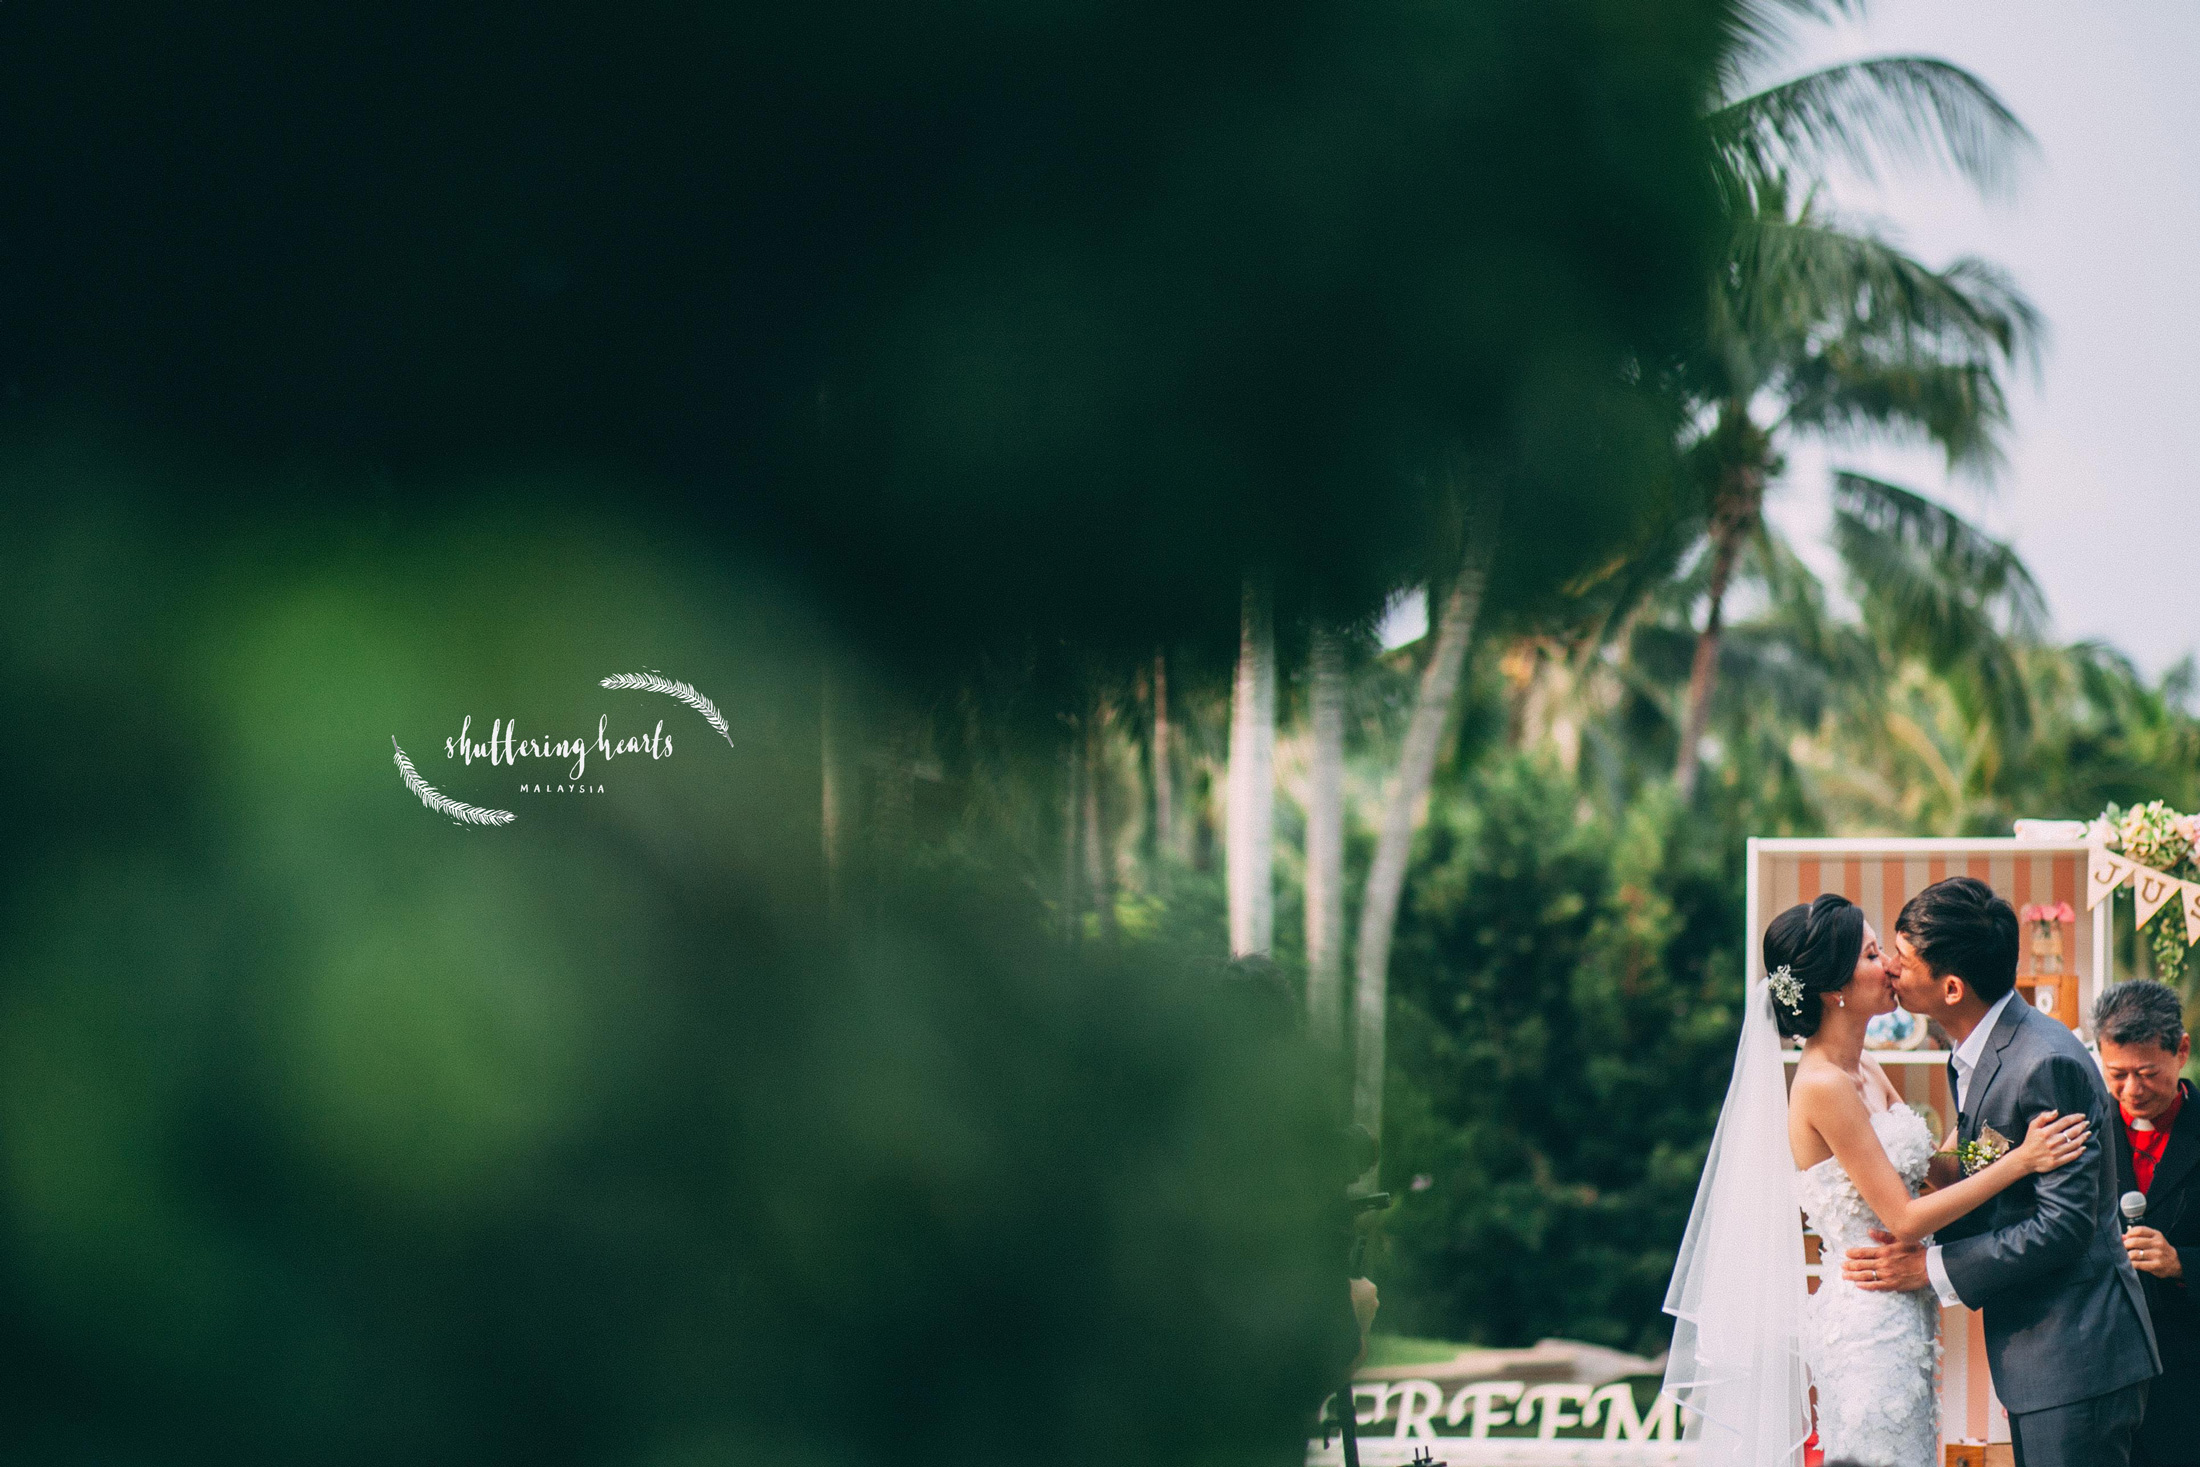 PJ Wedding Photographer Malaysia Best Wedding Photography | Shuttering Hearts